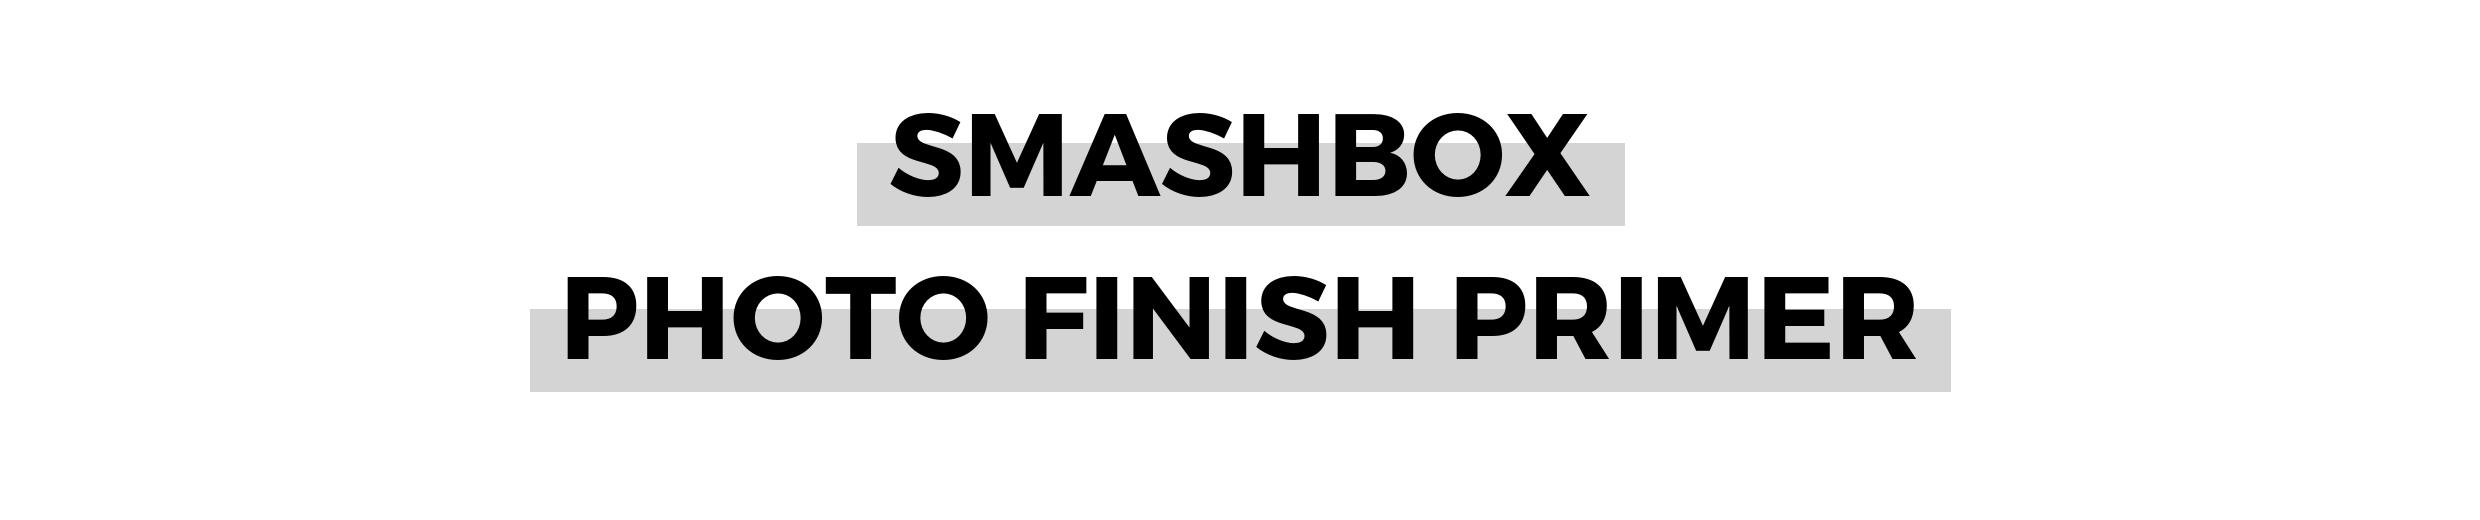 SMASHBOX PHOTO FINISH PRIMER.png